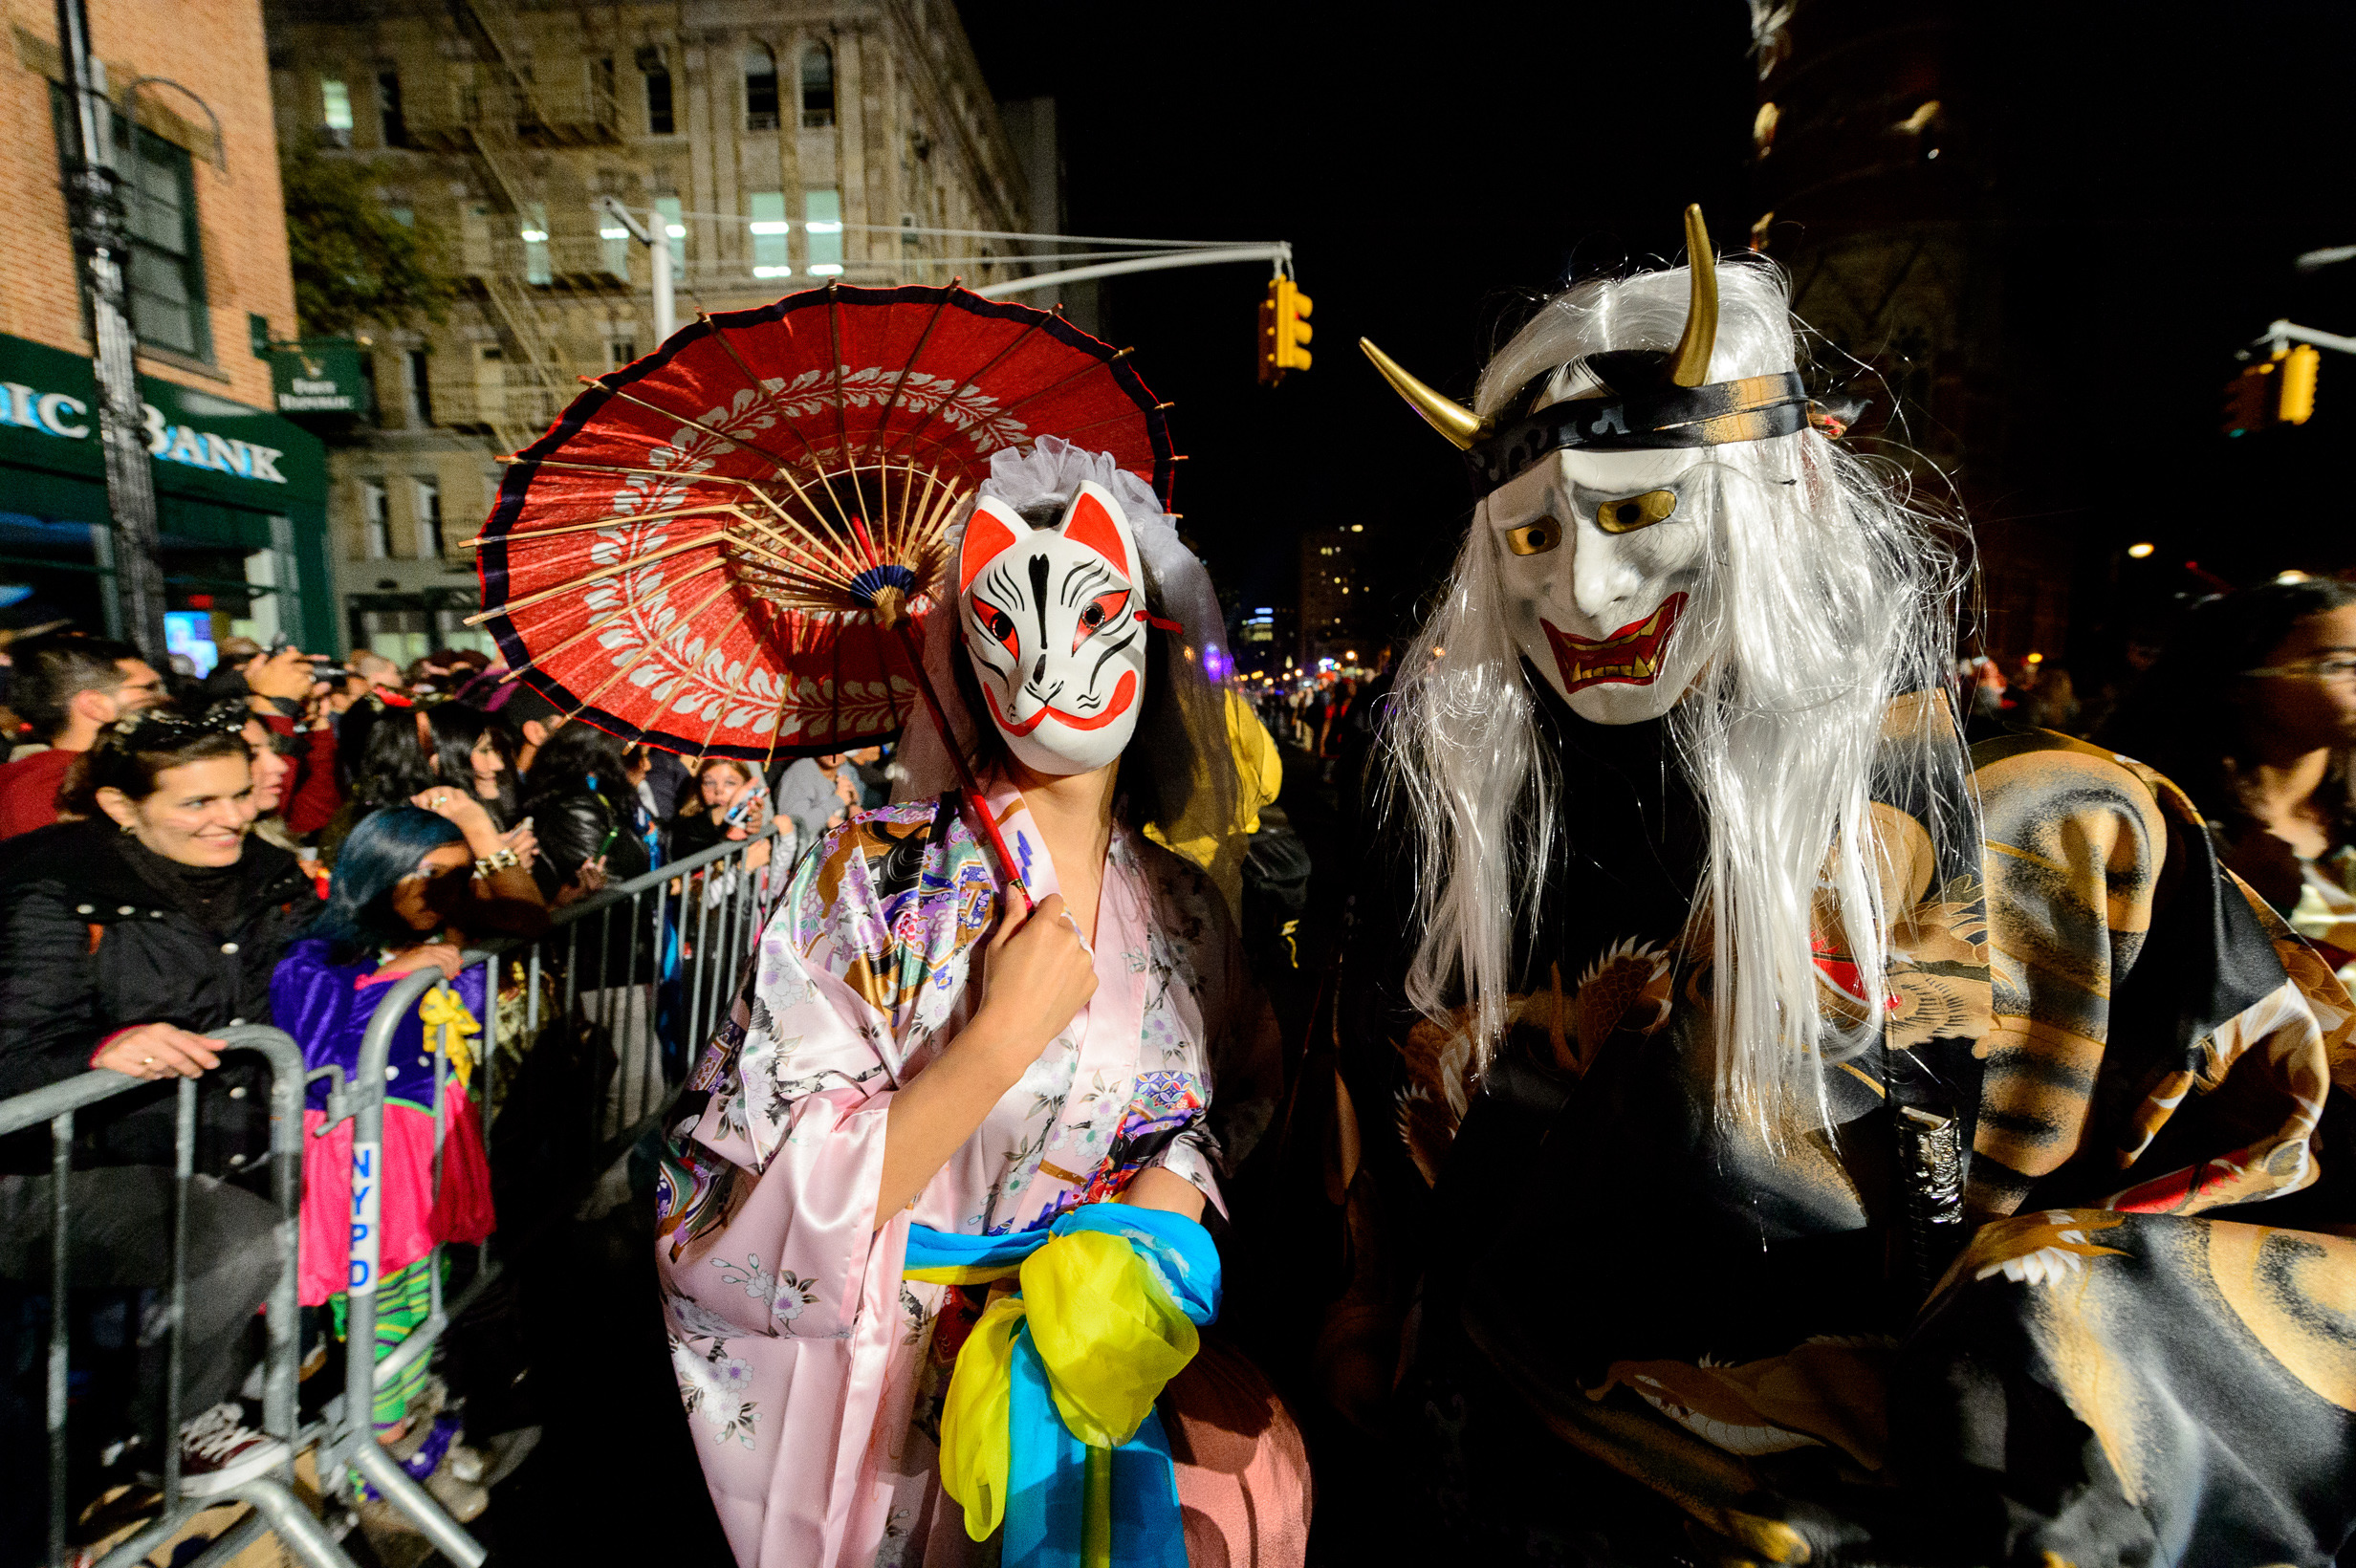 Village halloween parade in nyc 2017 guide plus when it starts for Fun things for couples to do in nyc